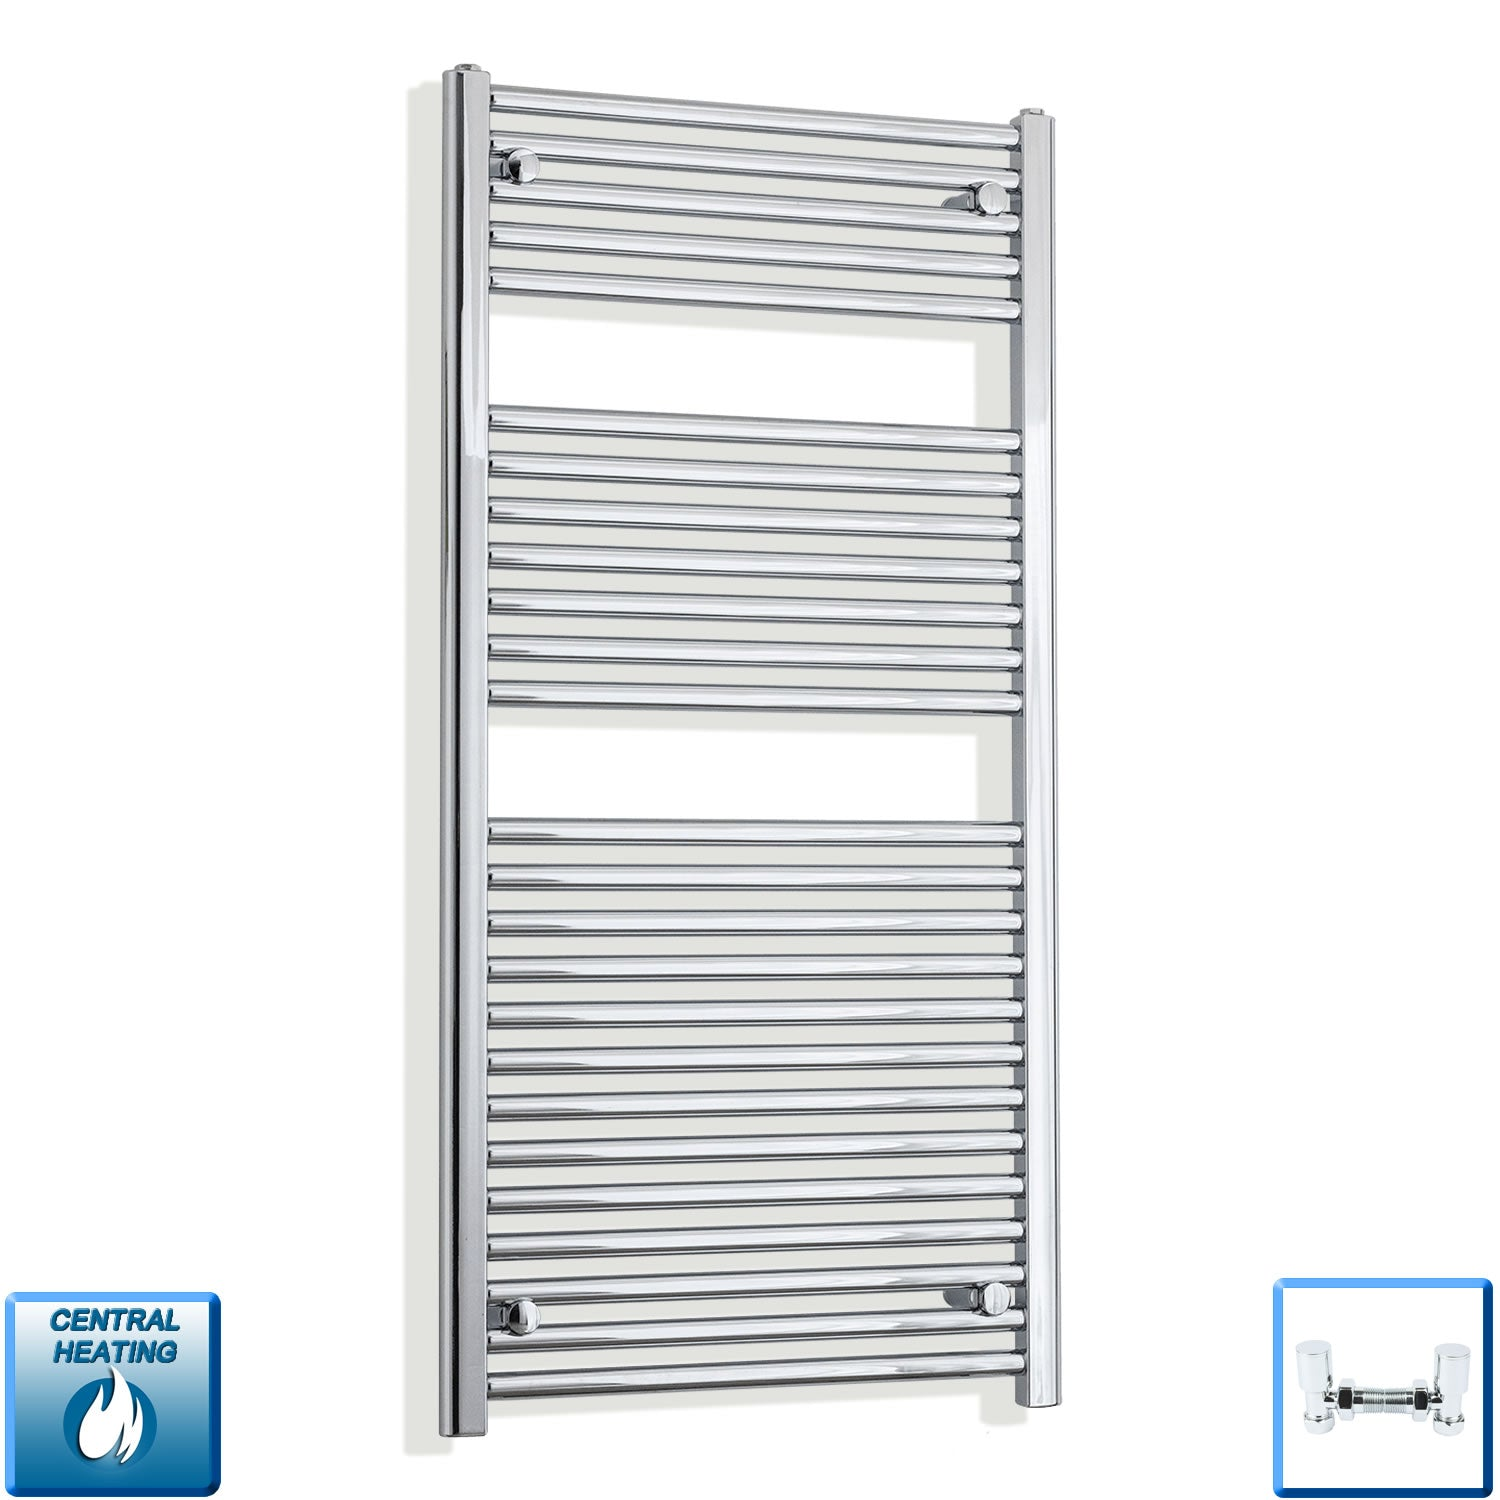 500mm Wide 1211mm High 25mm Straight Chrome Heated Towel Rail Radiator HTR,With Angled Valve